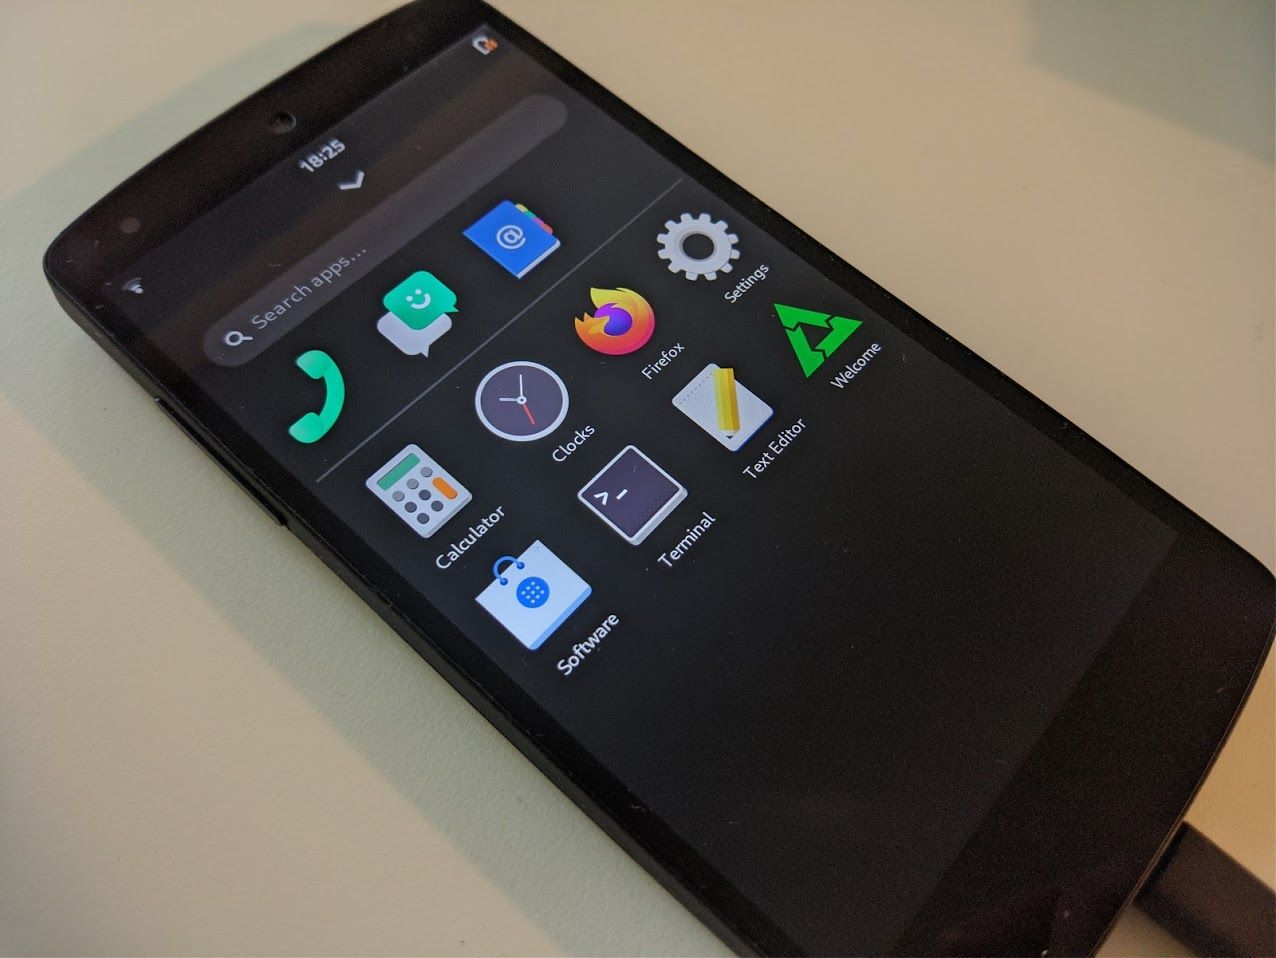 Using A Google Nexus 5 As A Linux Phone In 2020